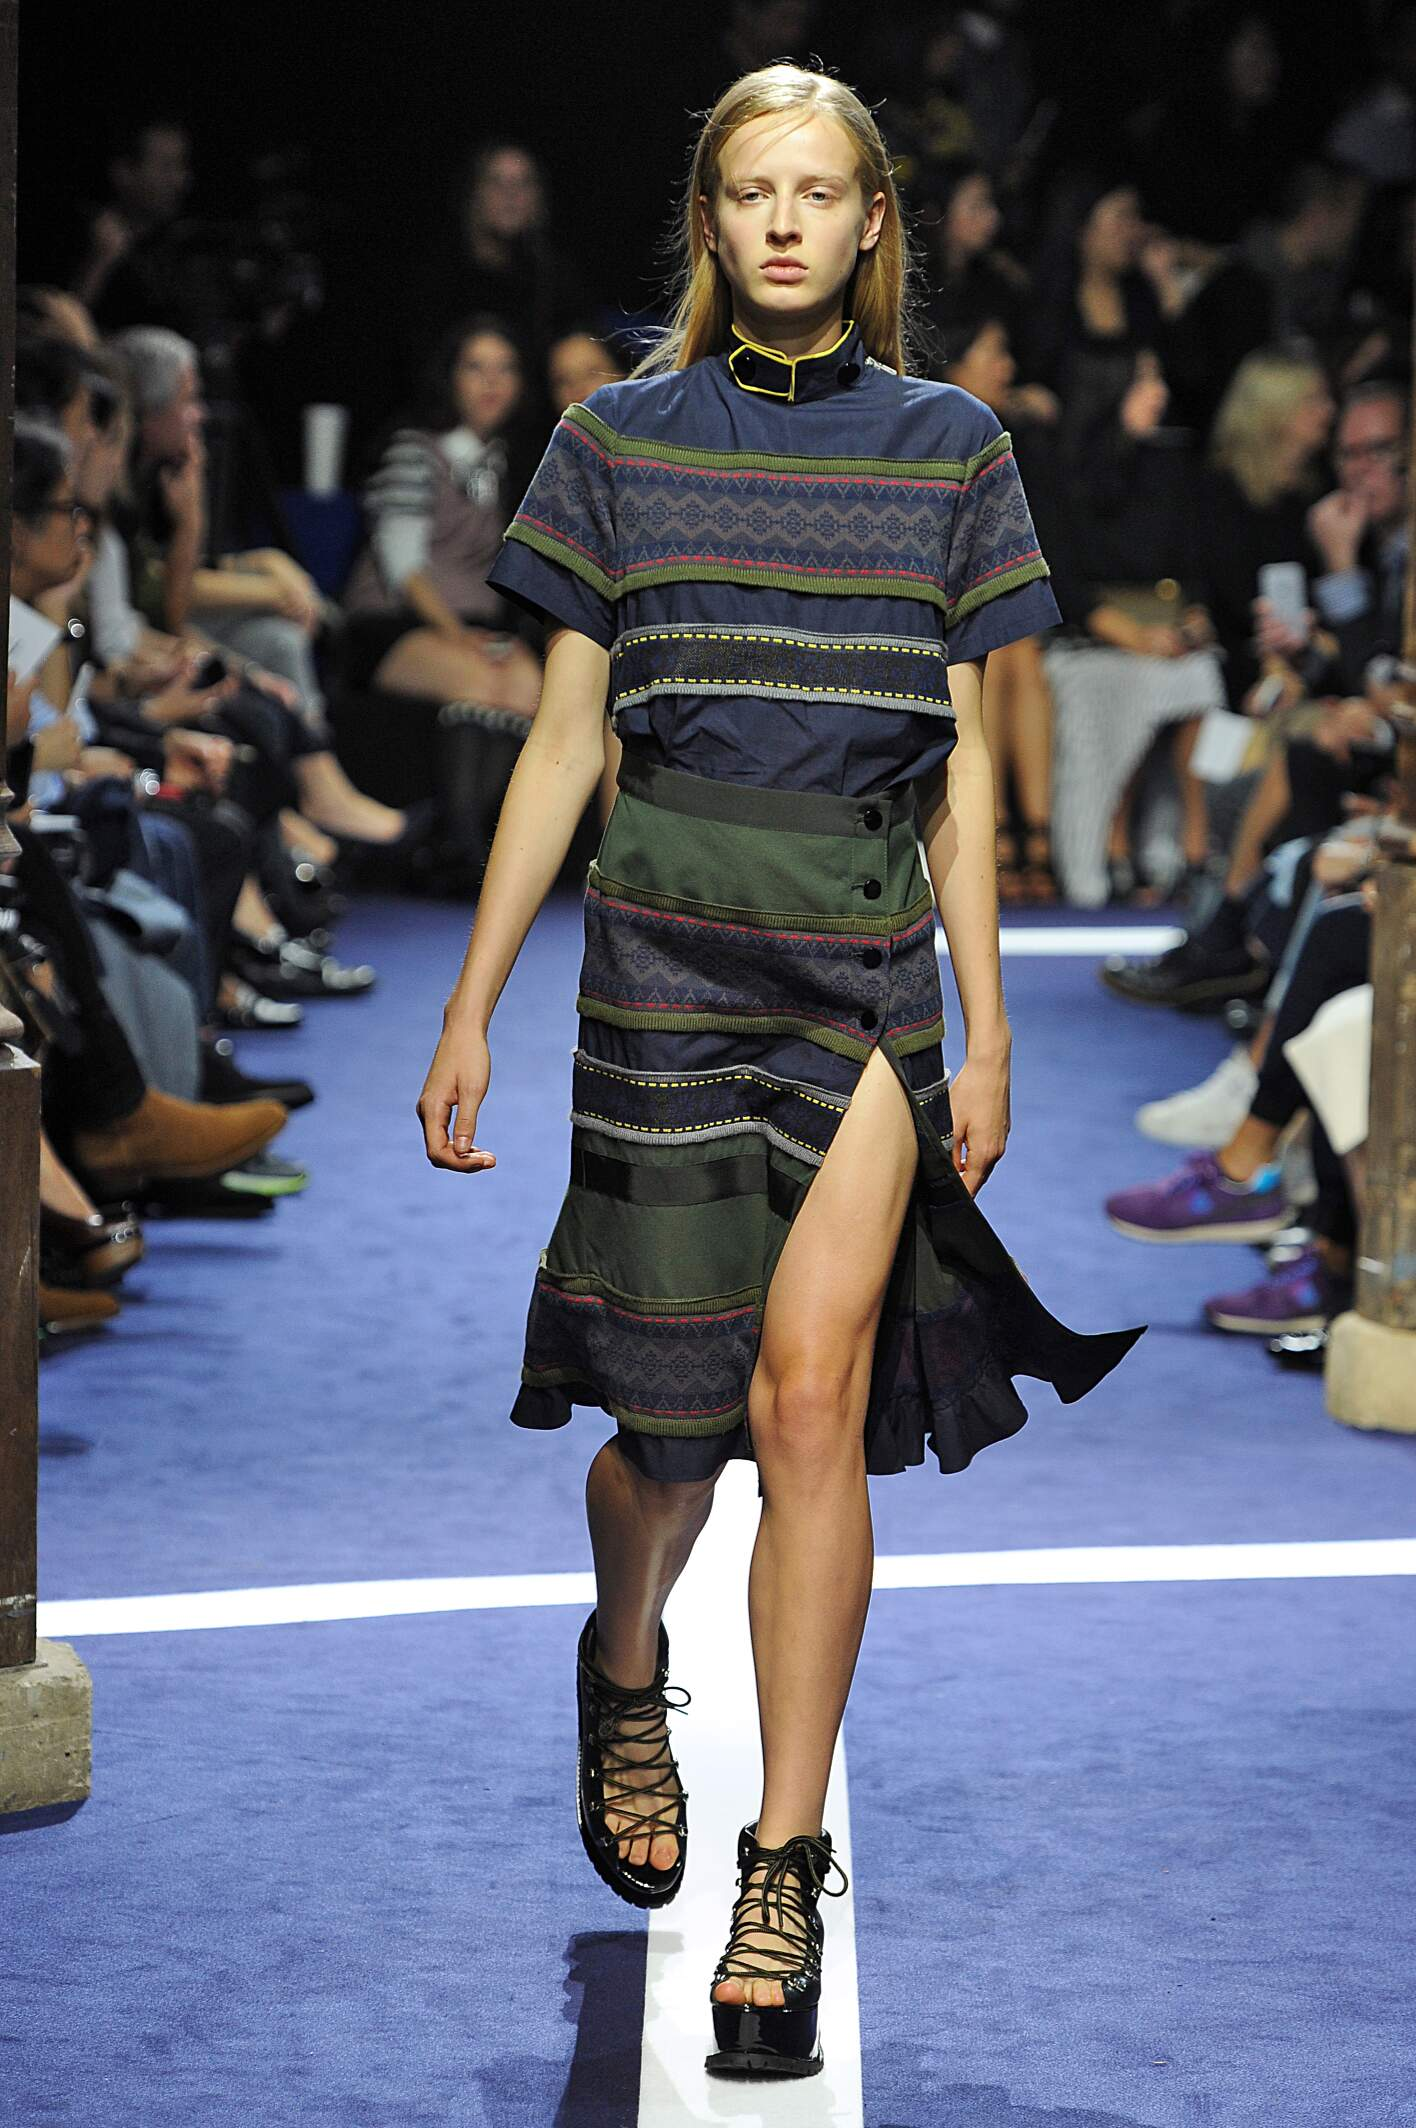 Fashion Model Sacai Catwalk